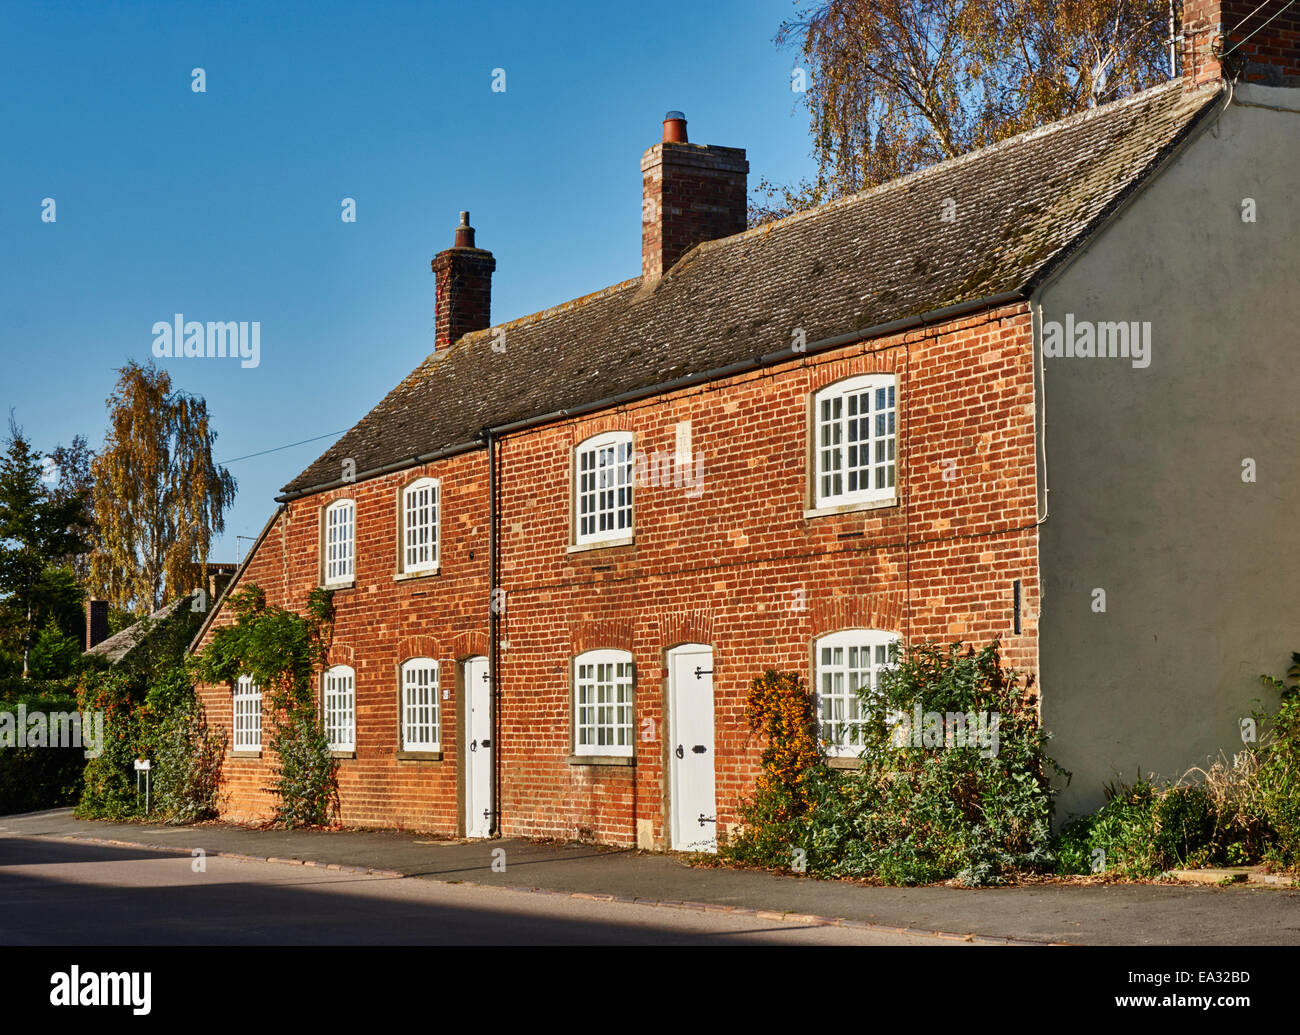 Old Brick Houses Stock Photos & Old Brick Houses Stock Images - Alamy